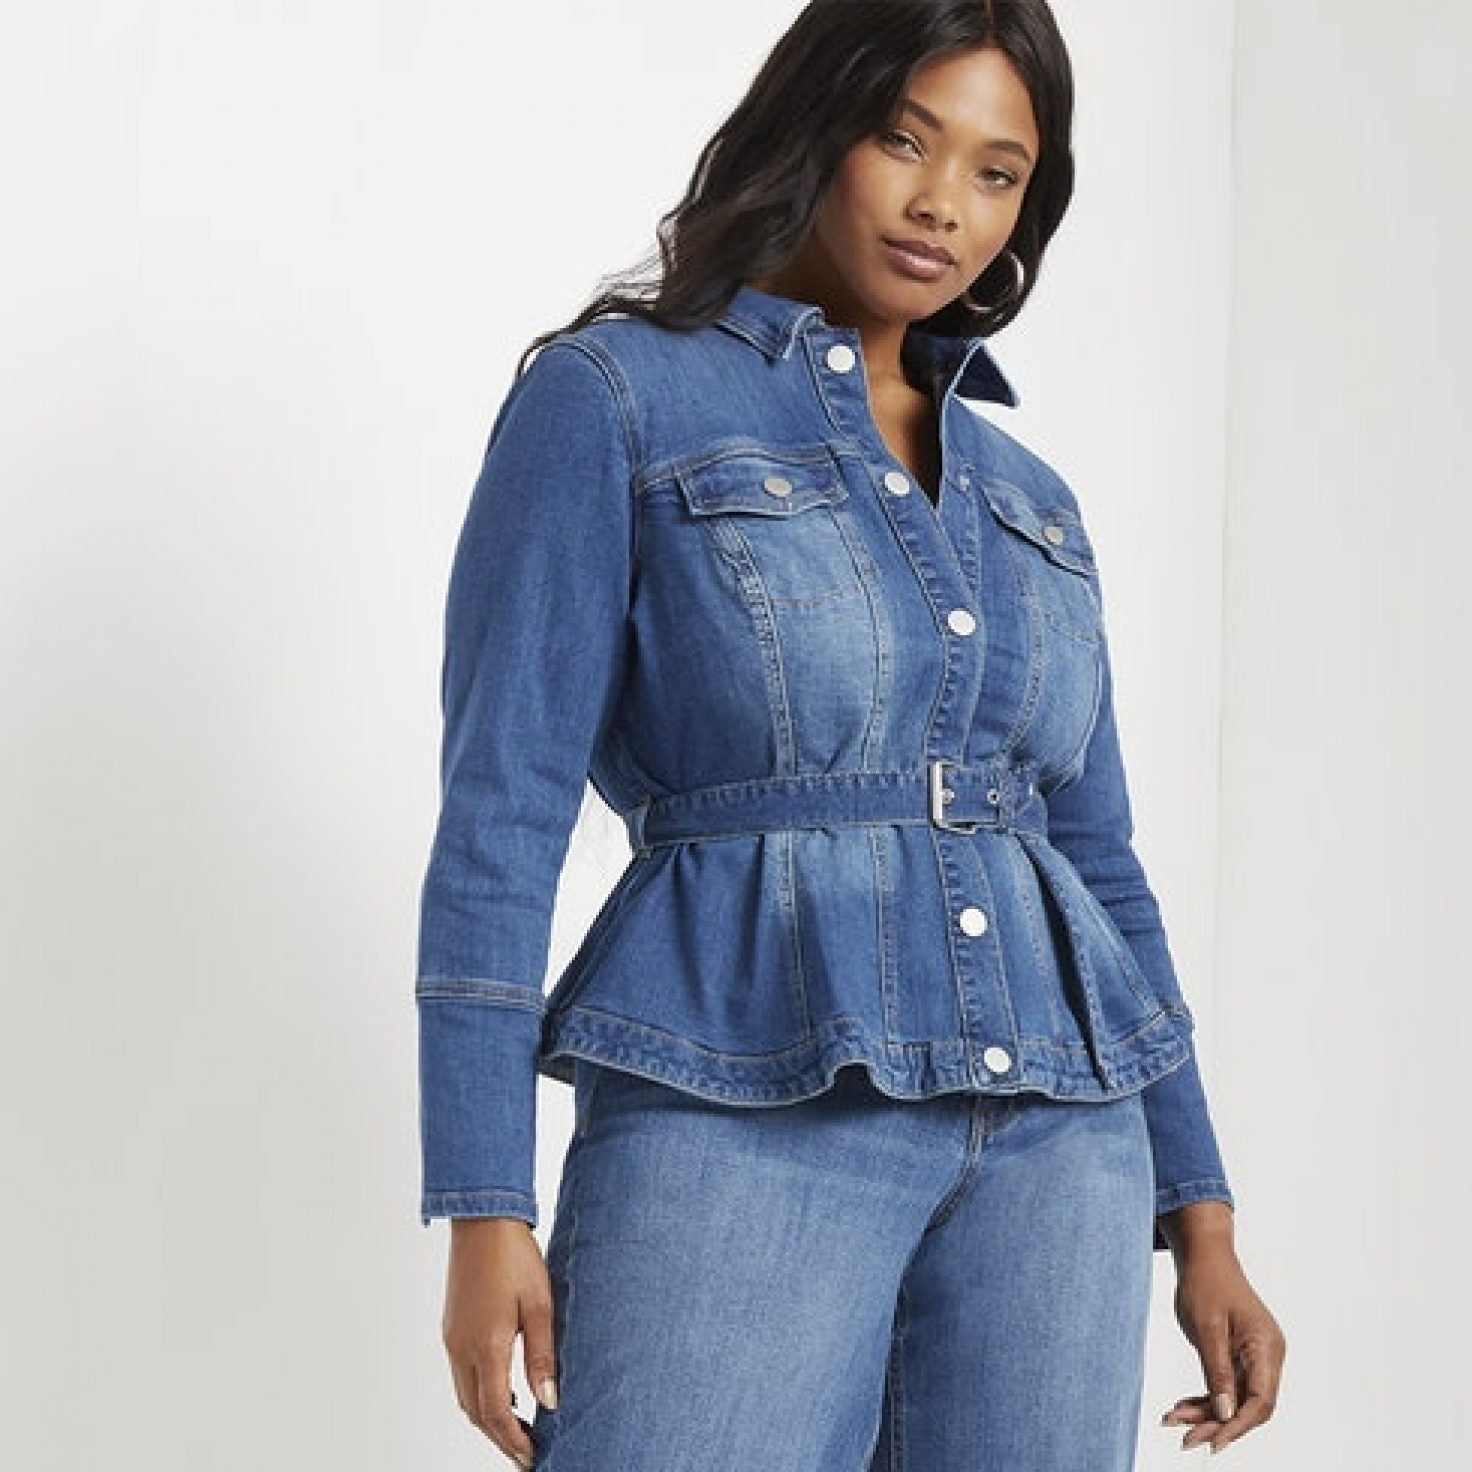 Oh Hey, Curvy Girl! These Gems From Eloquii Are Going For Way Less And You Don't Want To Miss Out